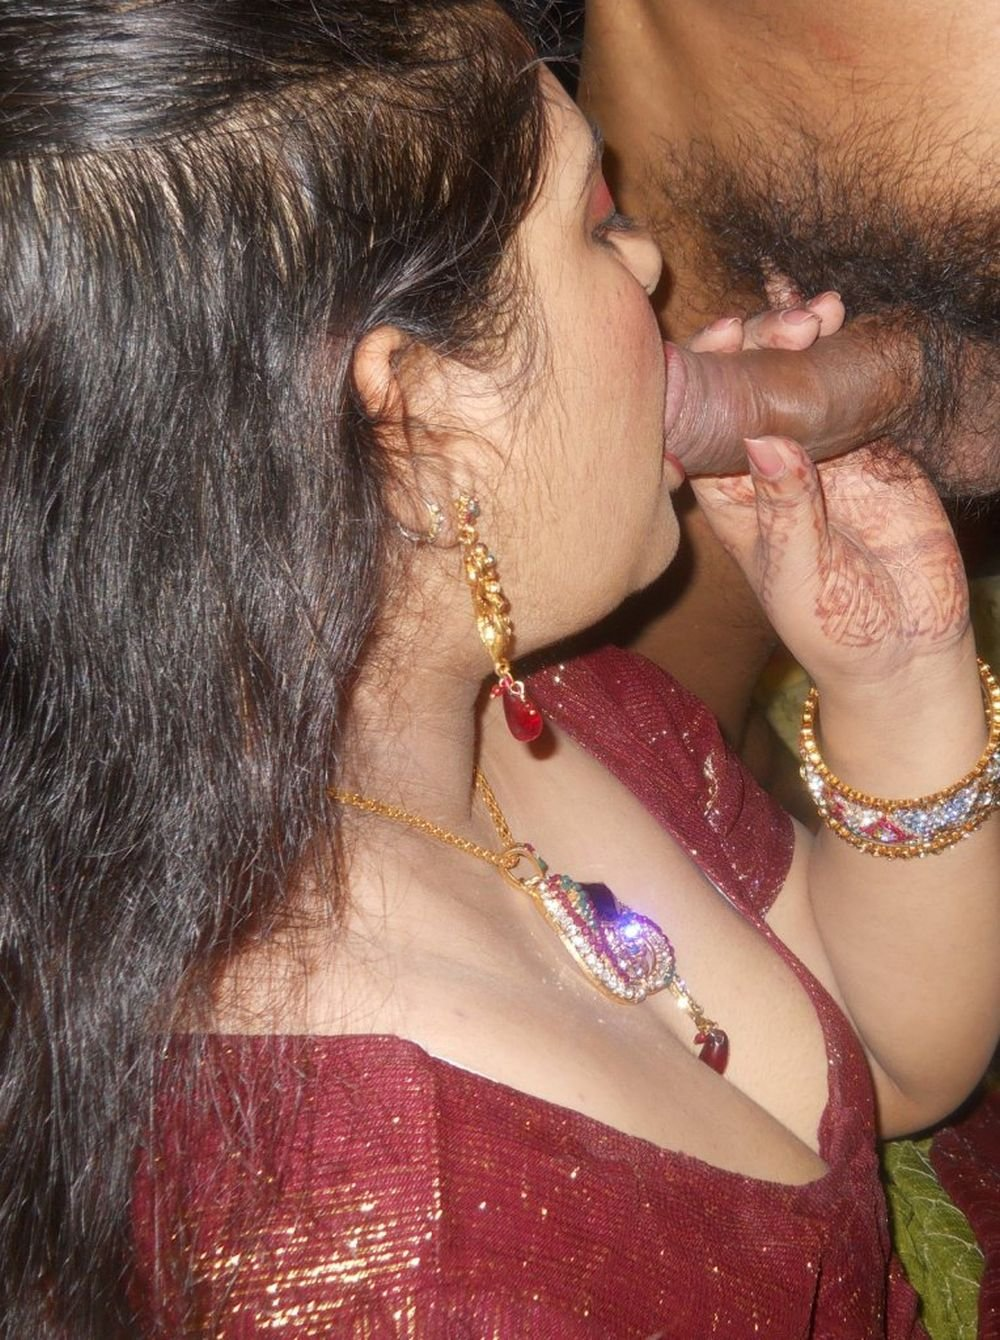 Indian Teen Slut Gives Amature Blowjob